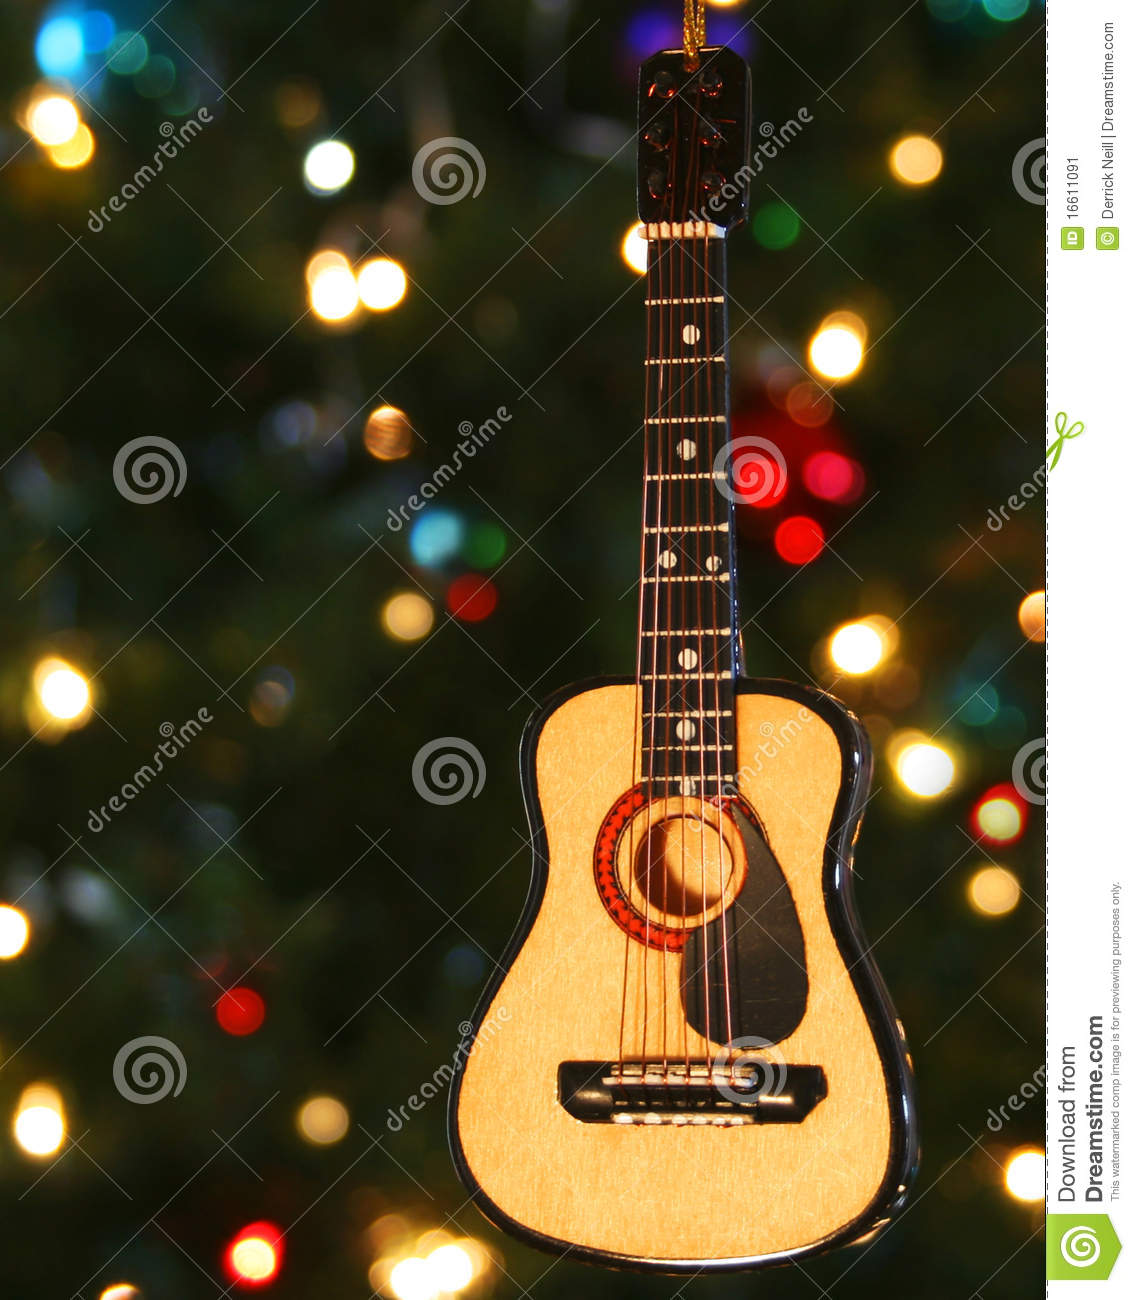 A Folk Guitar Ornament Stock Image - Image: 16611091